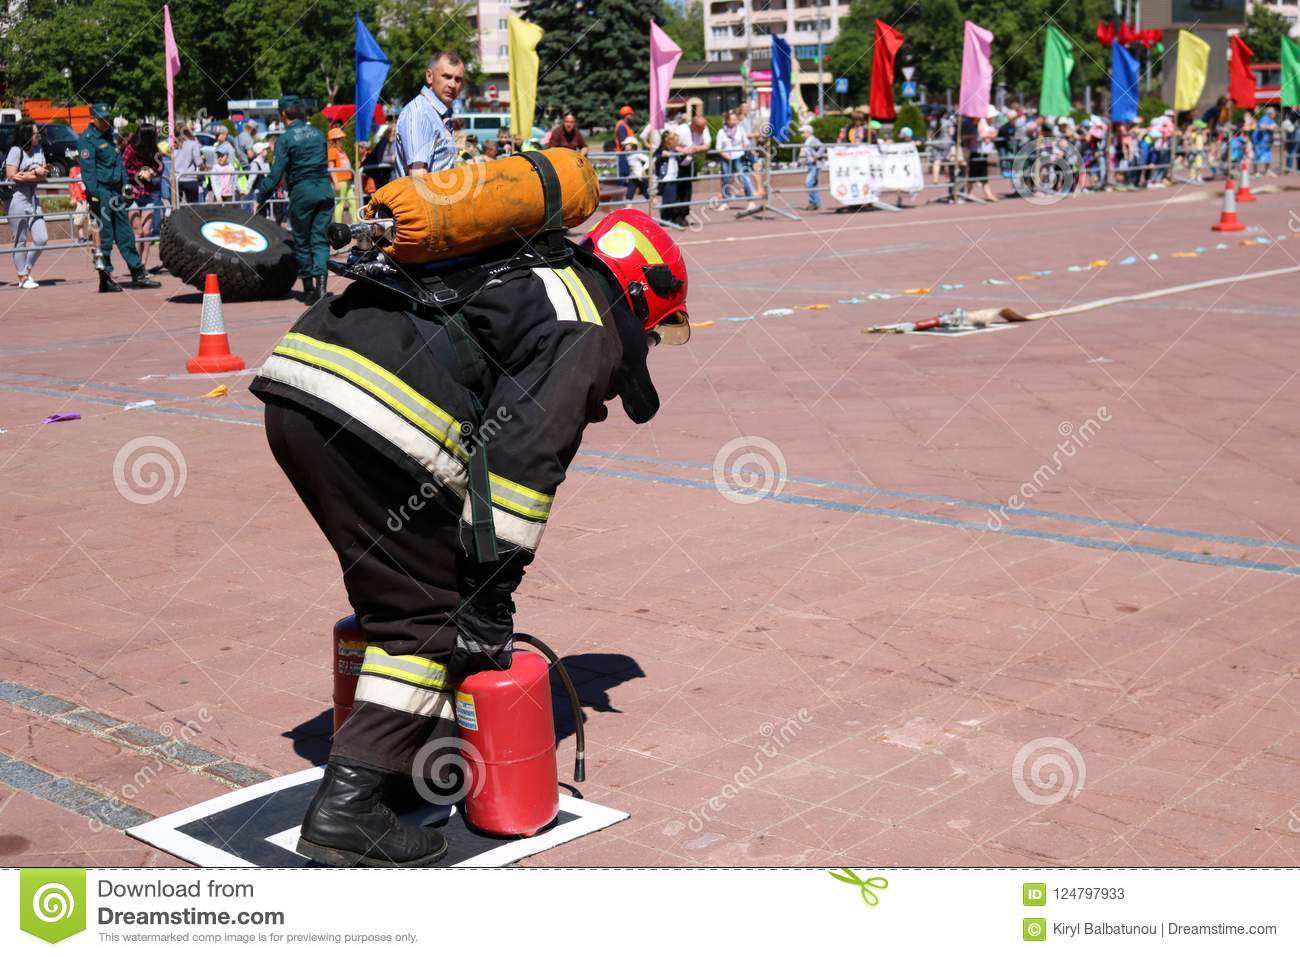 435b06c1a227 A fireman in a fireproof suit and a helmet running with red fire  extinguishers to extinguish a fire at a fire sport competition